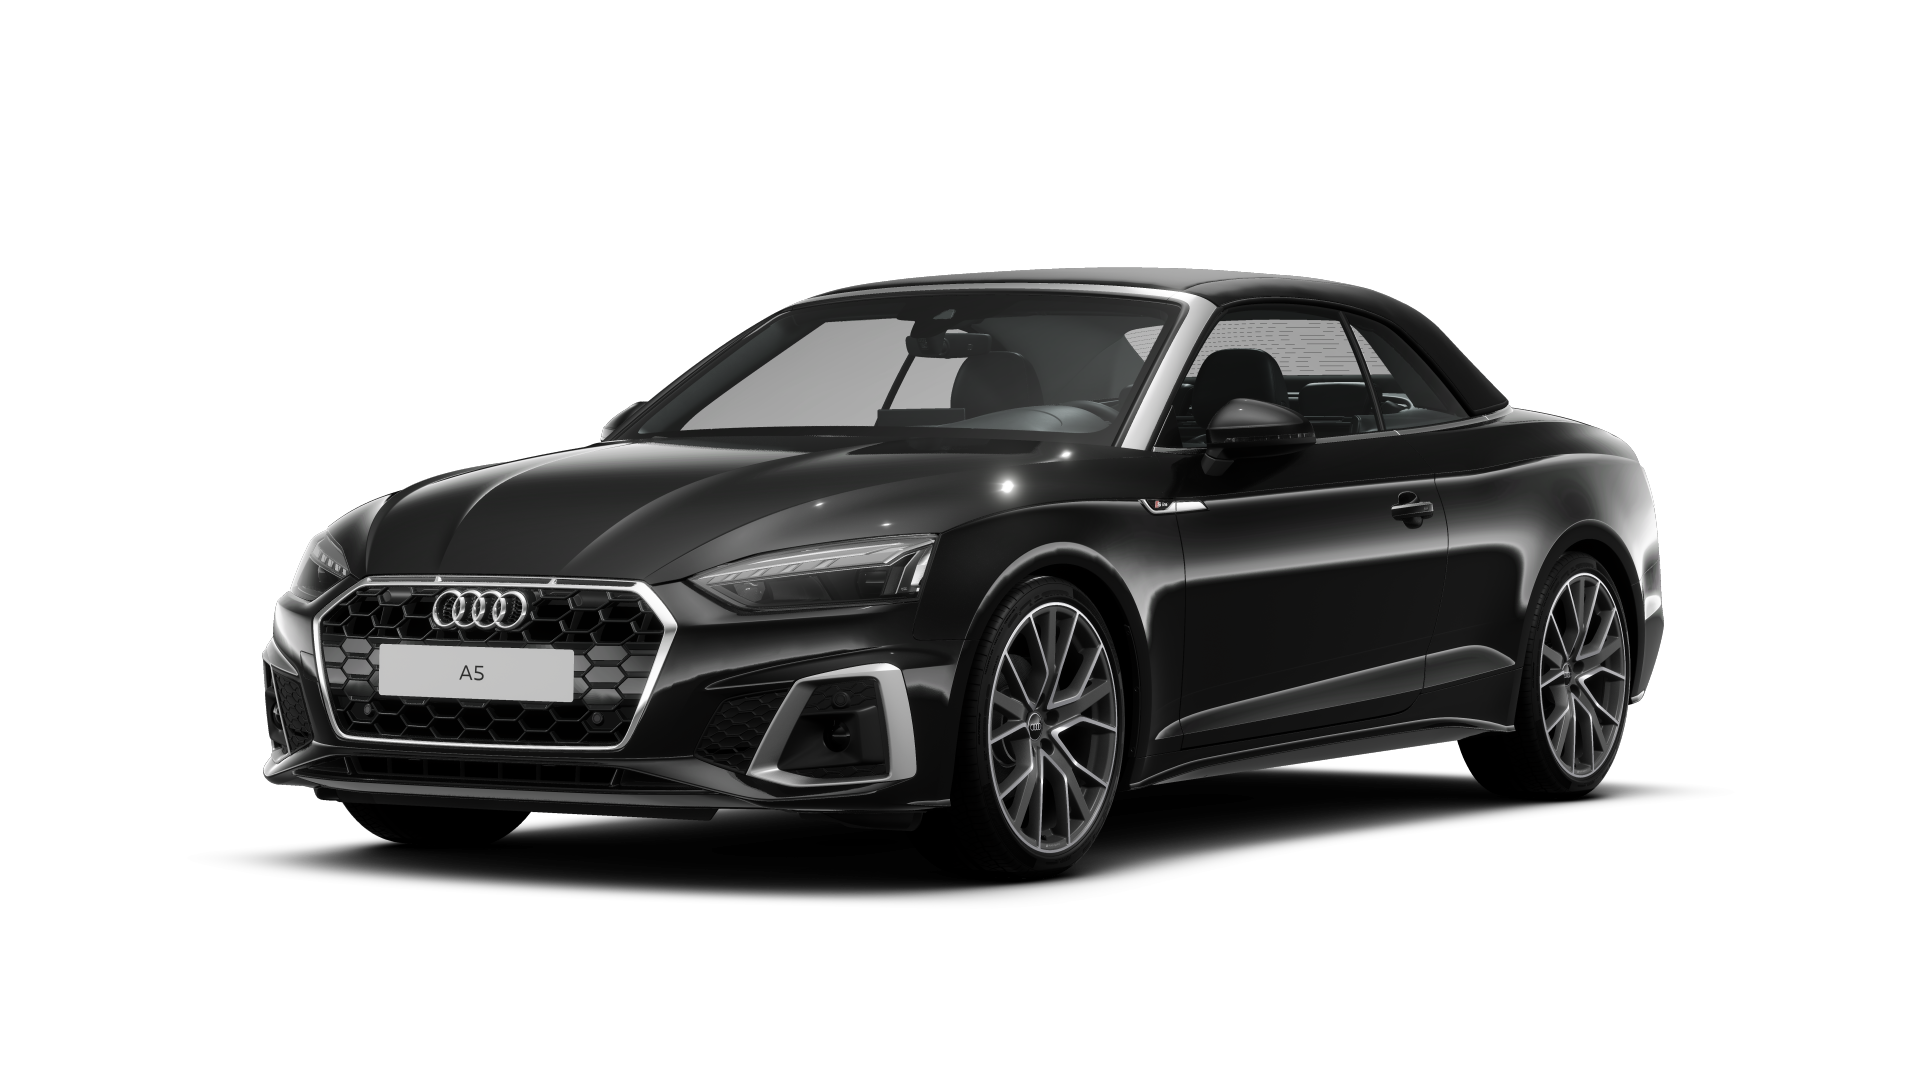 Audi A5 Cabriolet Business Edition S line 35 TFSI  110(150) kW(pk) S tronic